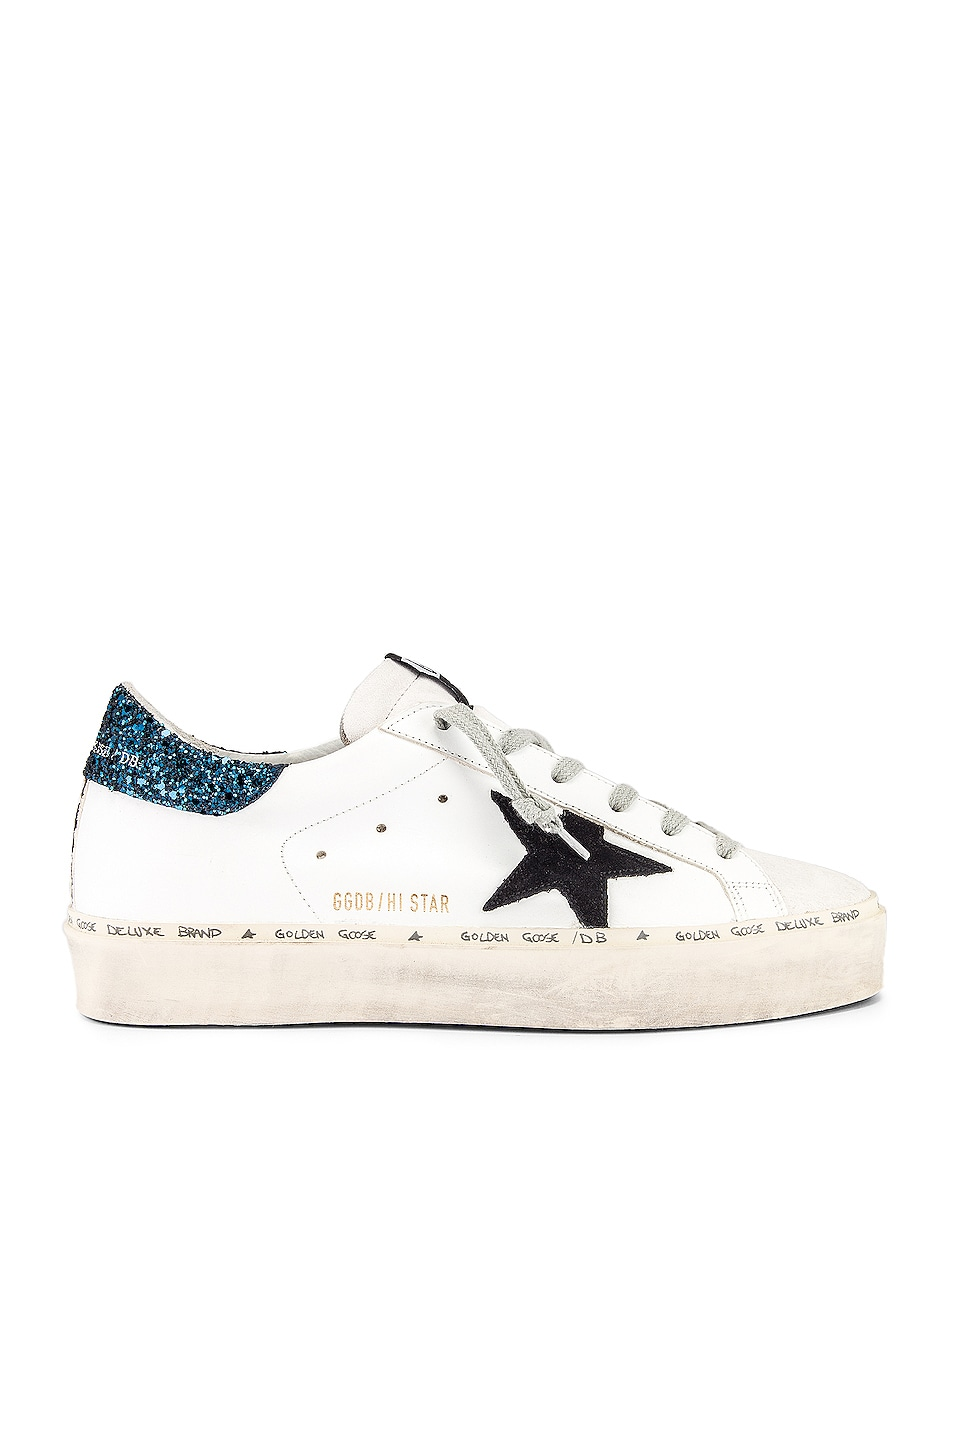 Image 1 of Golden Goose Hi Star Sneaker in White, Black & Blue Glitter